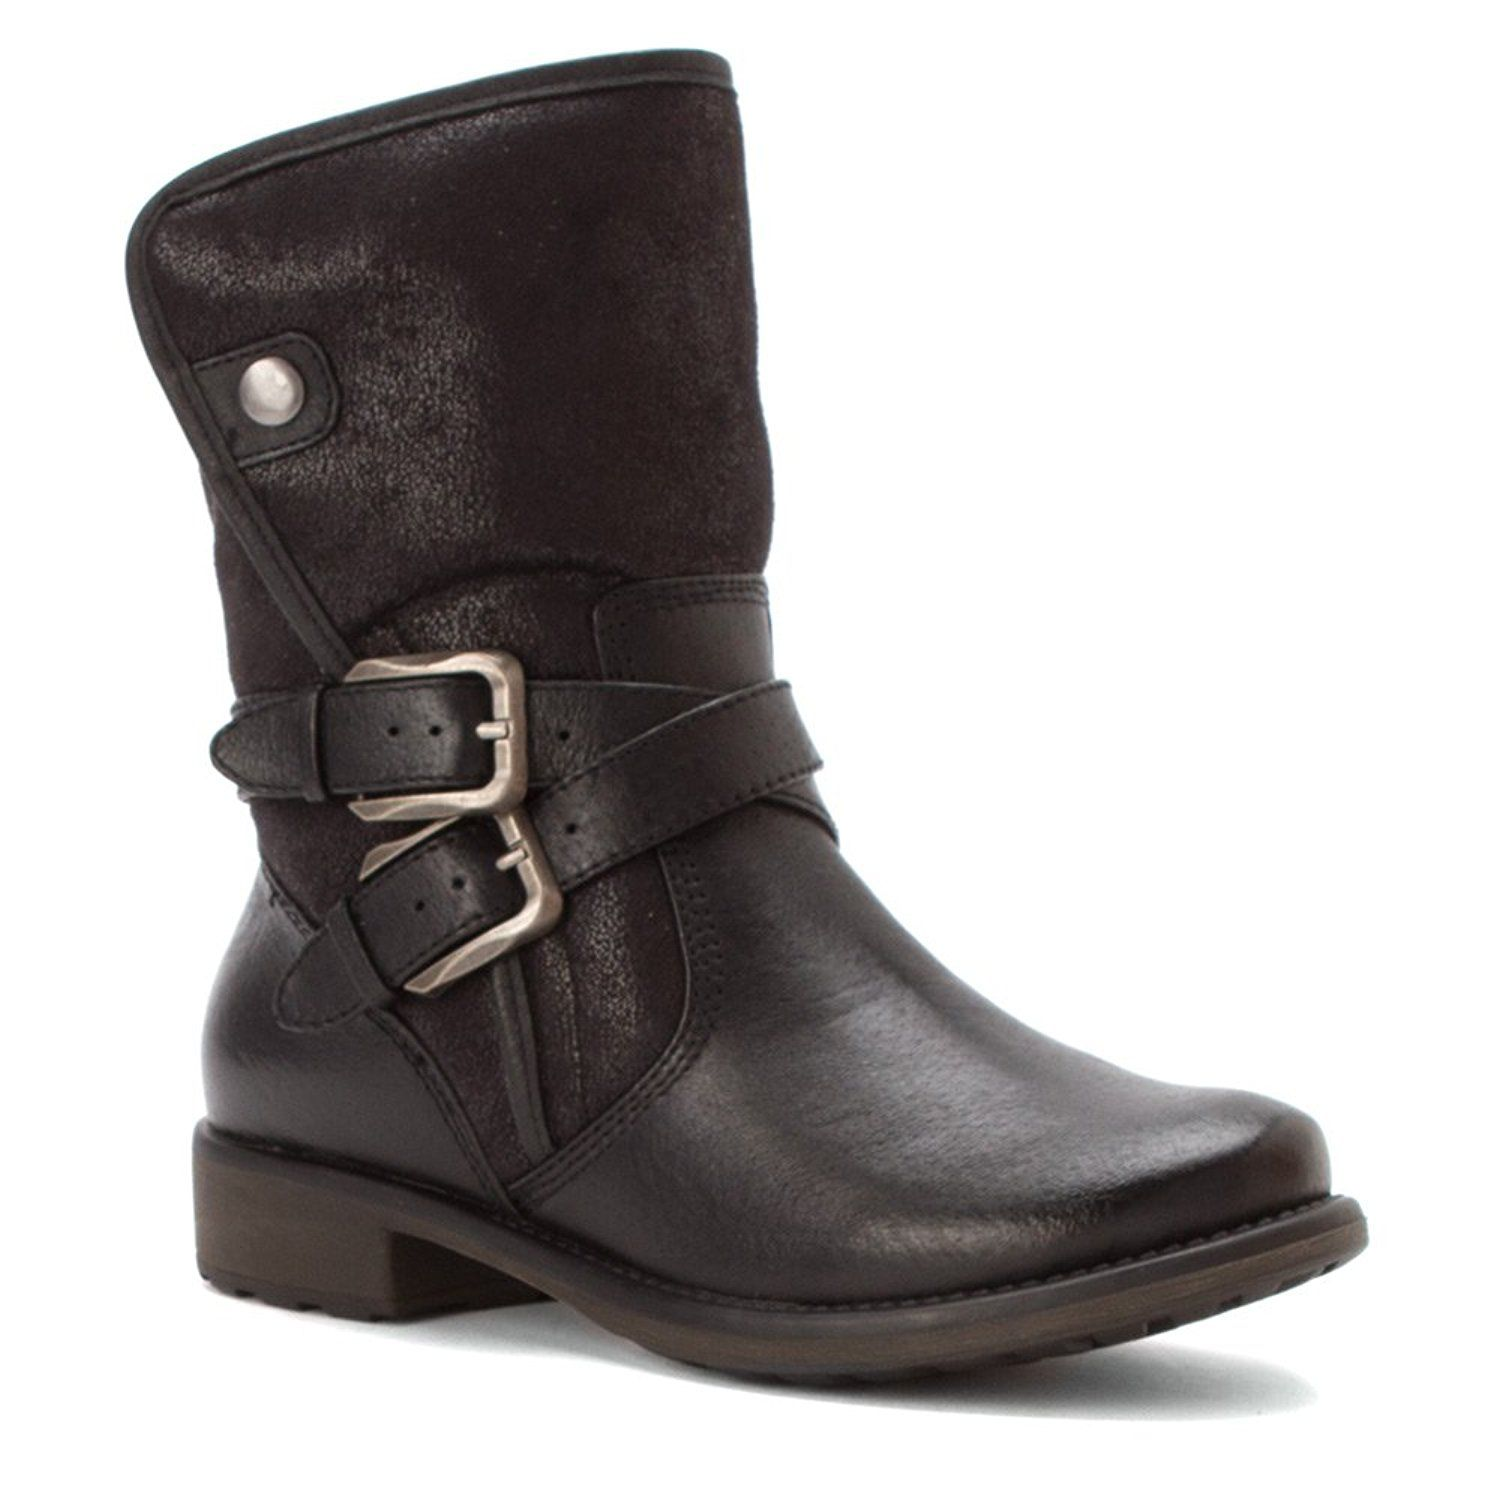 adc13e30c396 BareTraps Sabella Women s Boots     Find out more details by clicking the  image   Ankle Boots